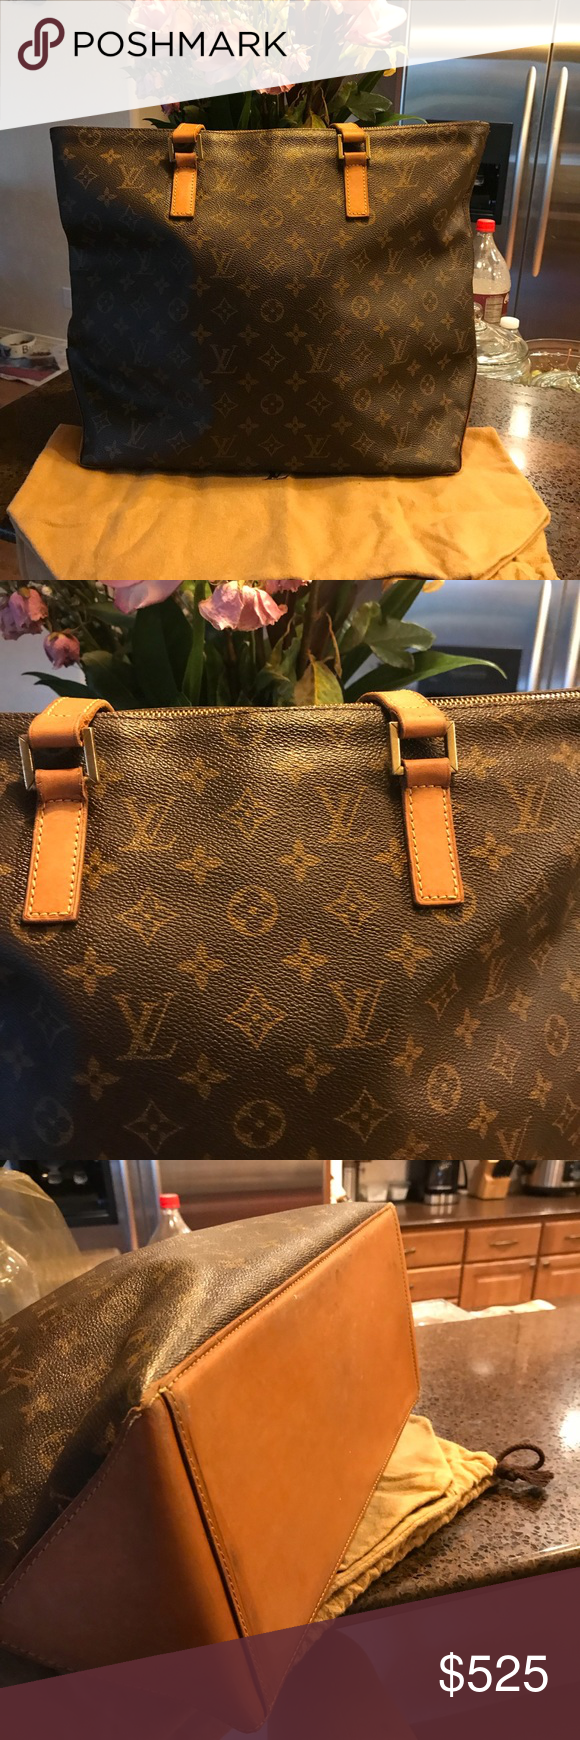 5789020f LouisVuitton Large Mezzo Tote Beautiful Vintage LouisVuitton Large ...